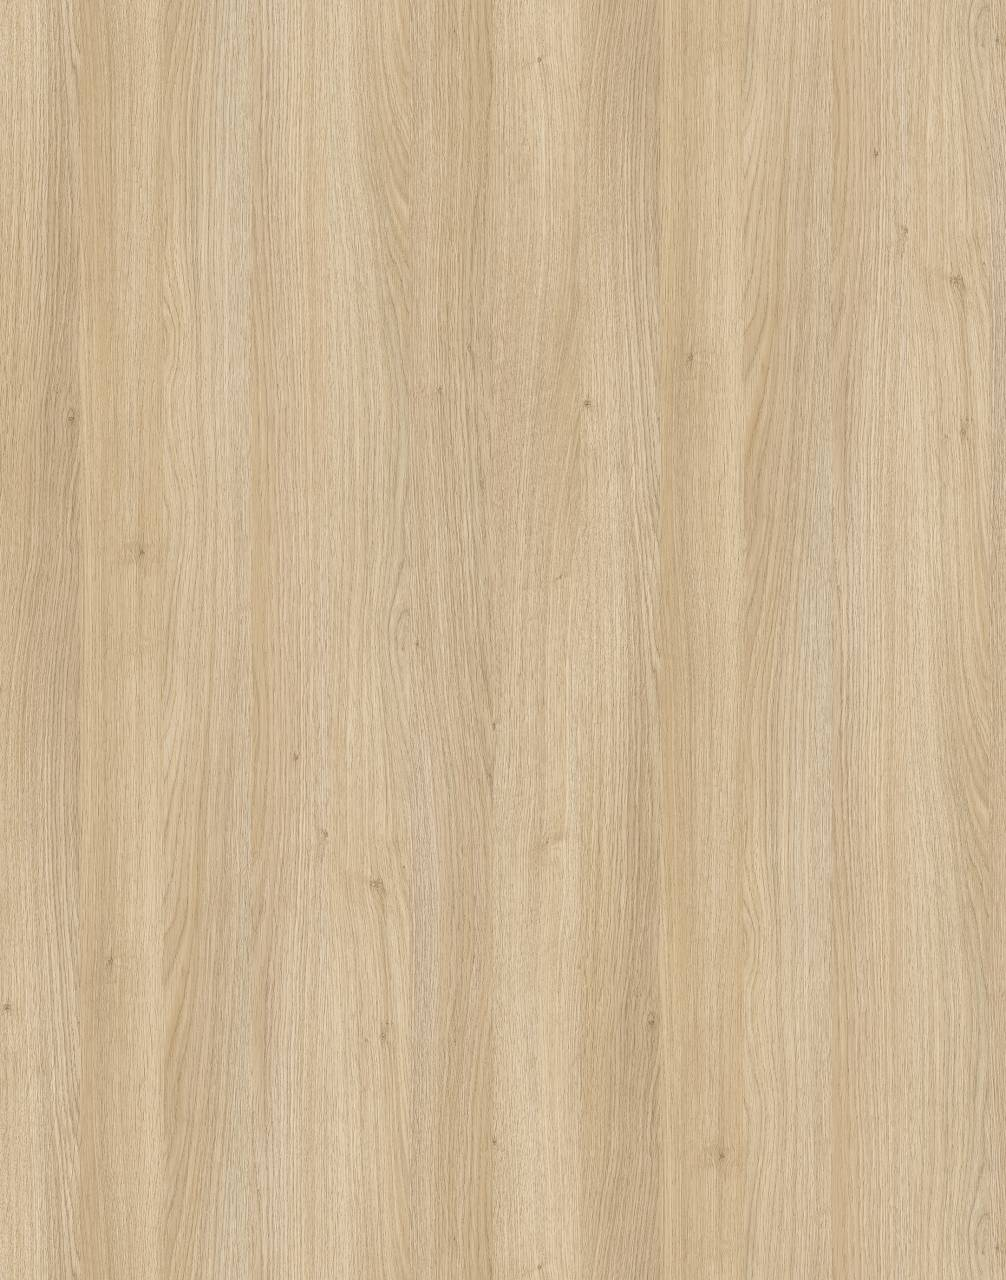 8431 Nagano Oak (MF PB sample)